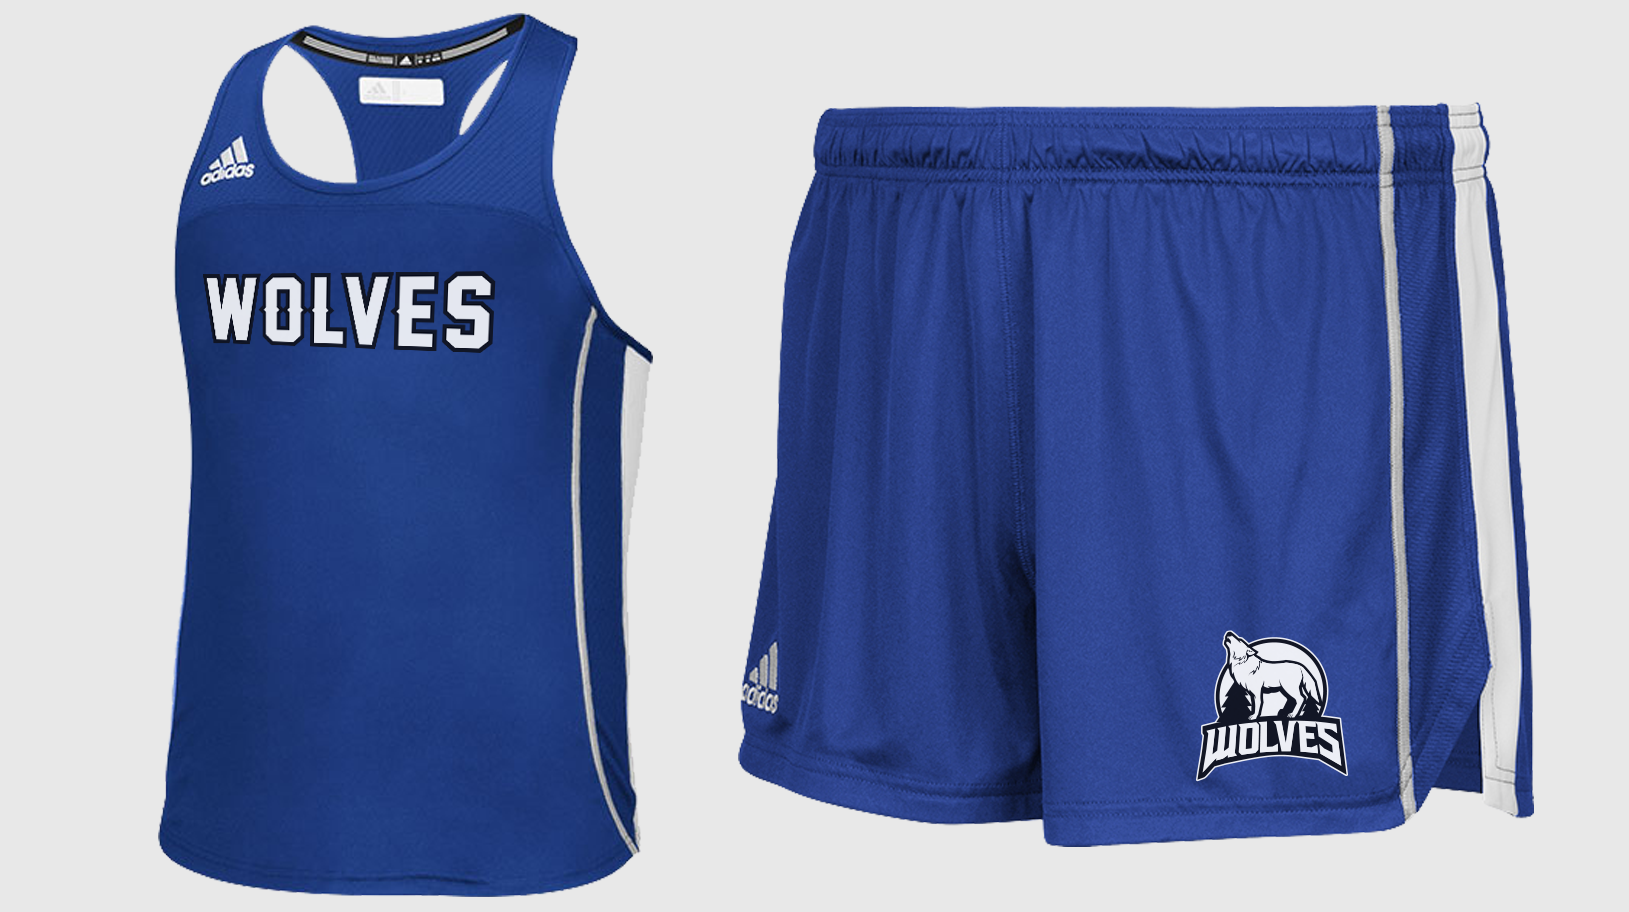 Adidas_Climacool_Utility_Singlet-1.png